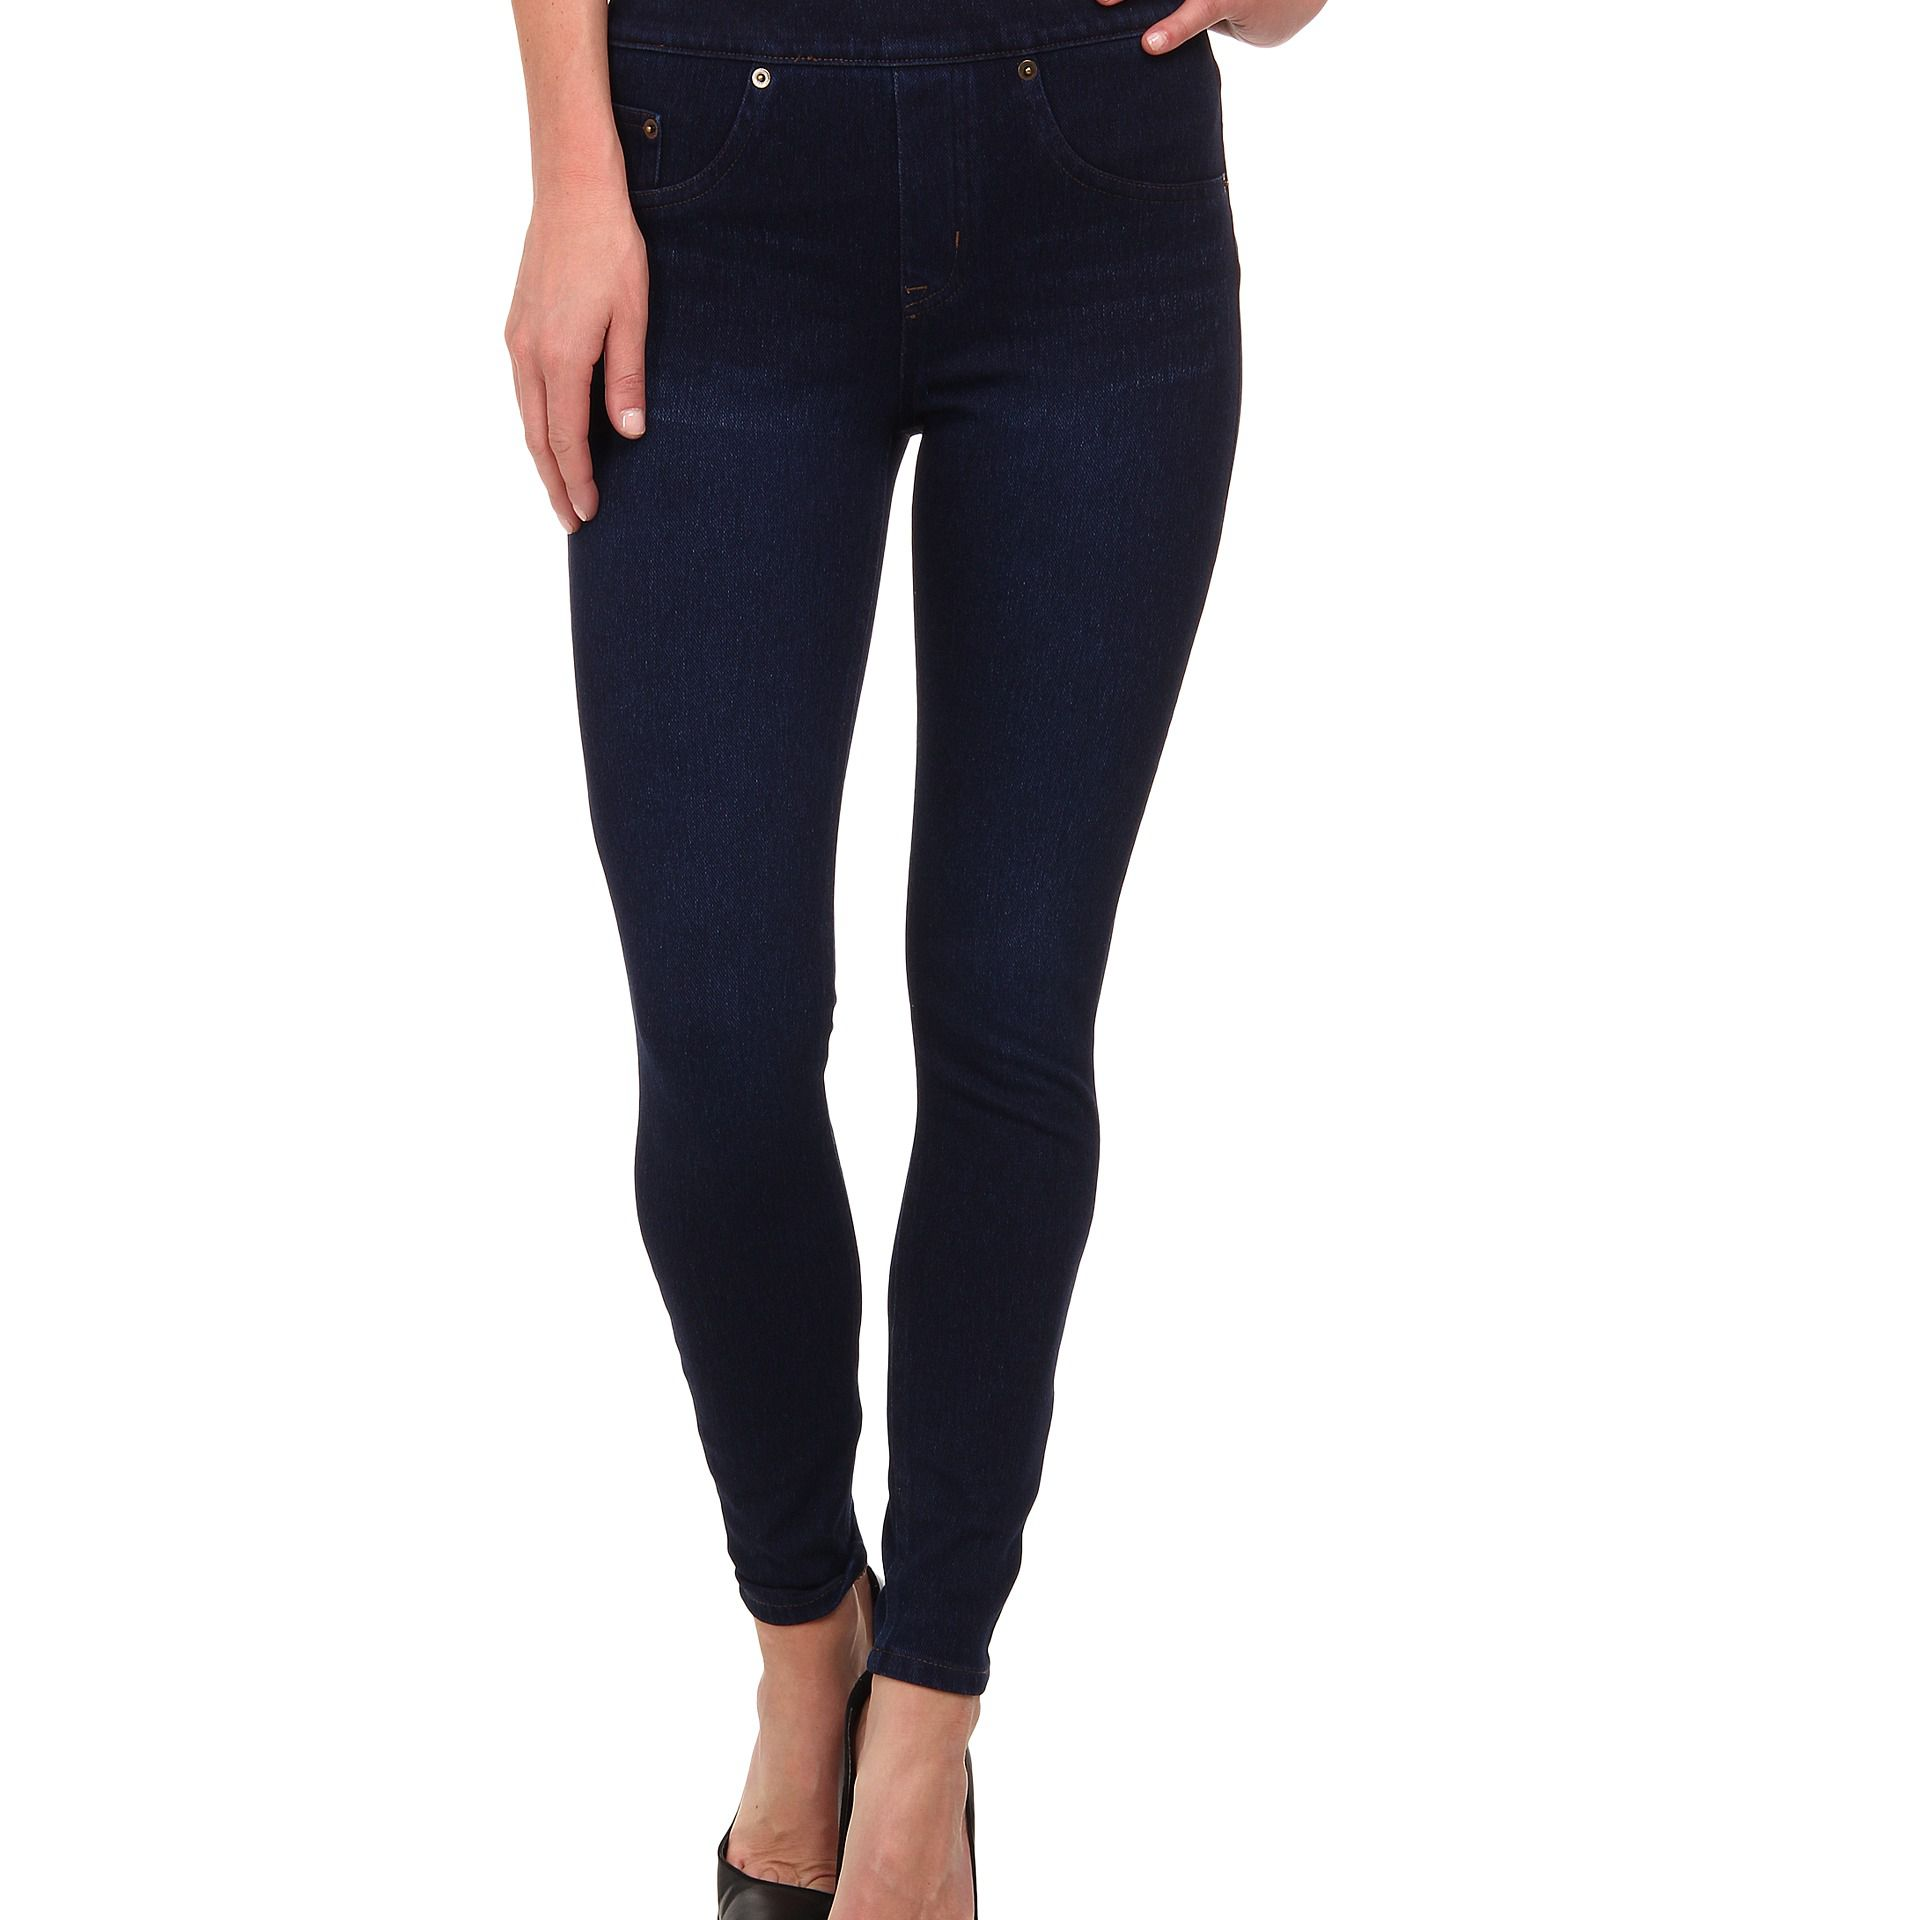 60e3d3366f389 5 Body Shaping Jeans that Act Like Shapewear